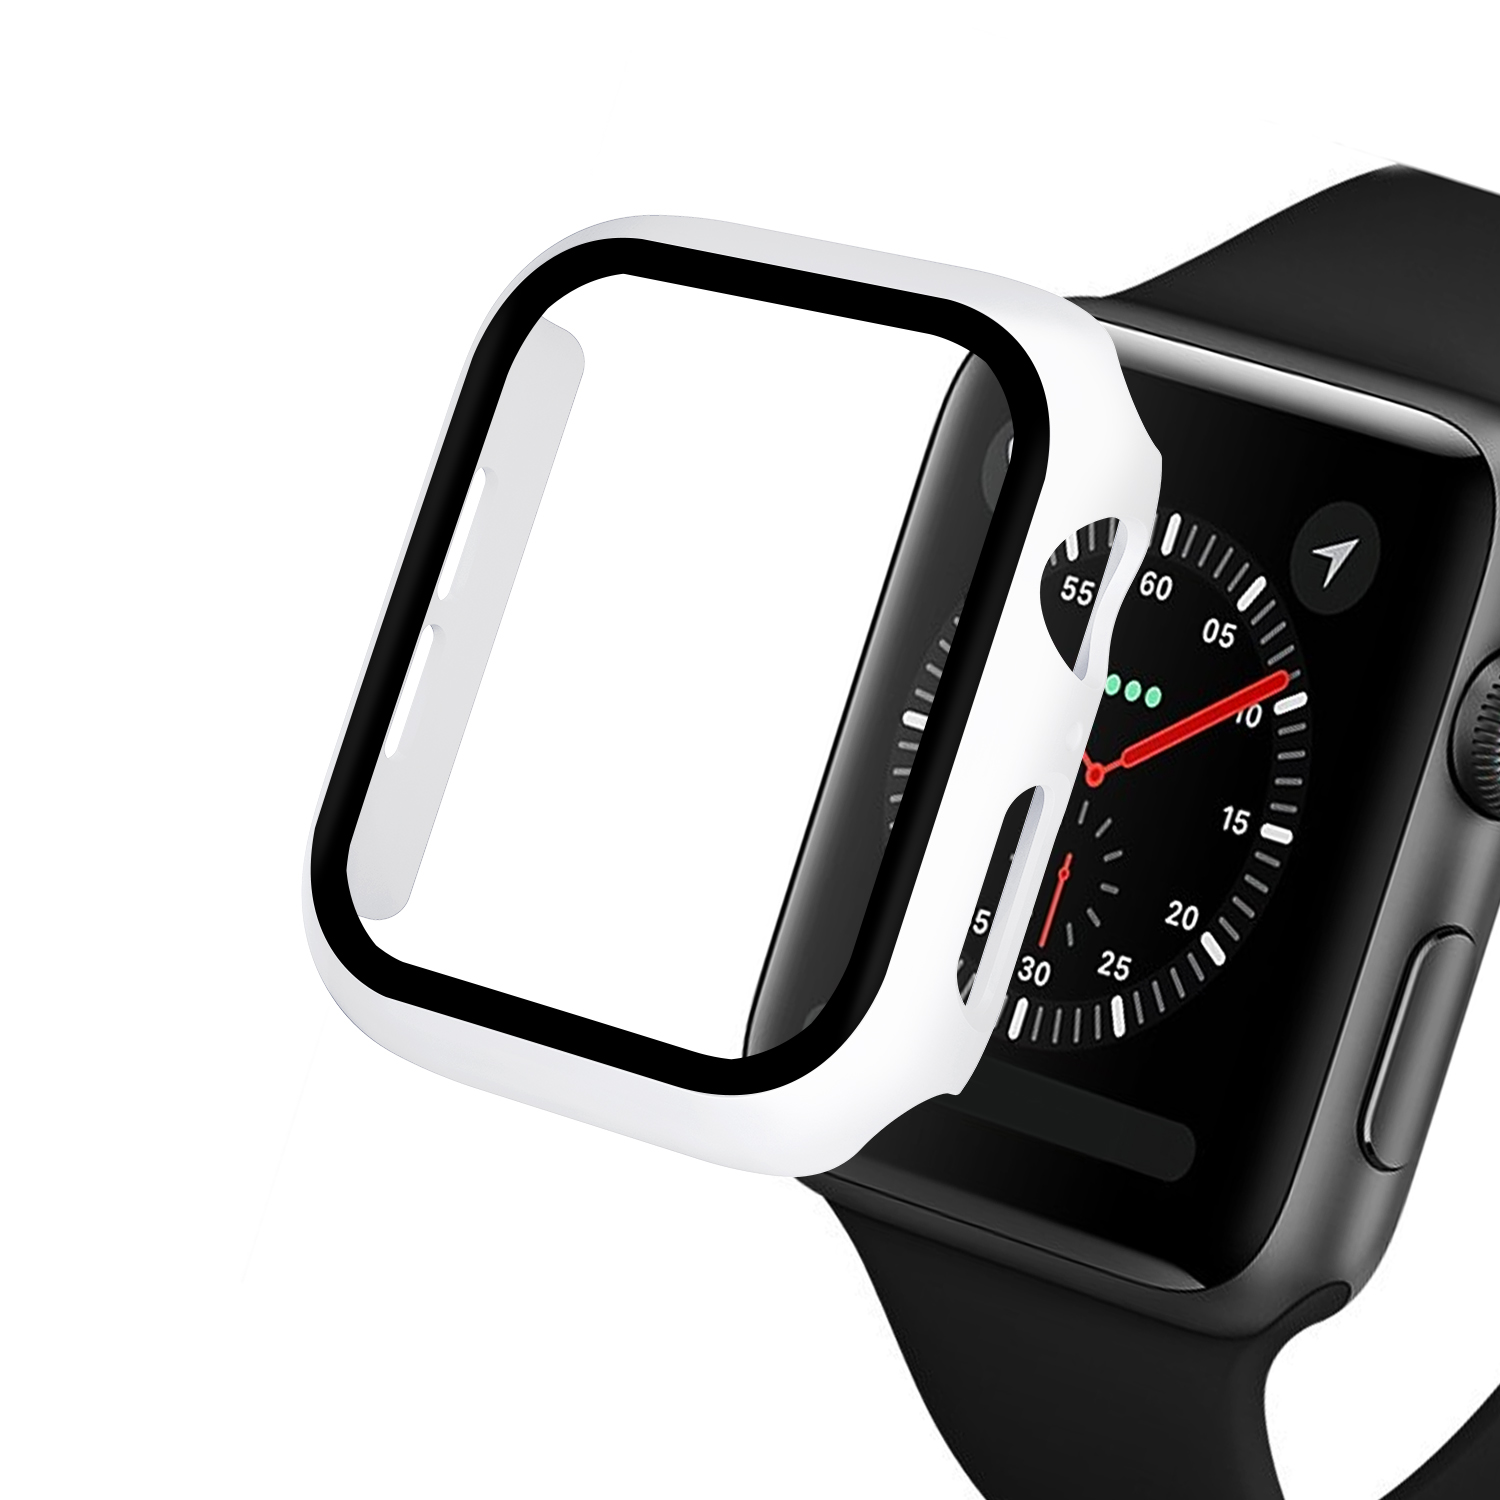 Watch Cover Case for Apple Watch 5/4 40MM/44MM PC Bumper with Glass Protector Film for iwatch Series 3/2 38 42MM  accessories 3